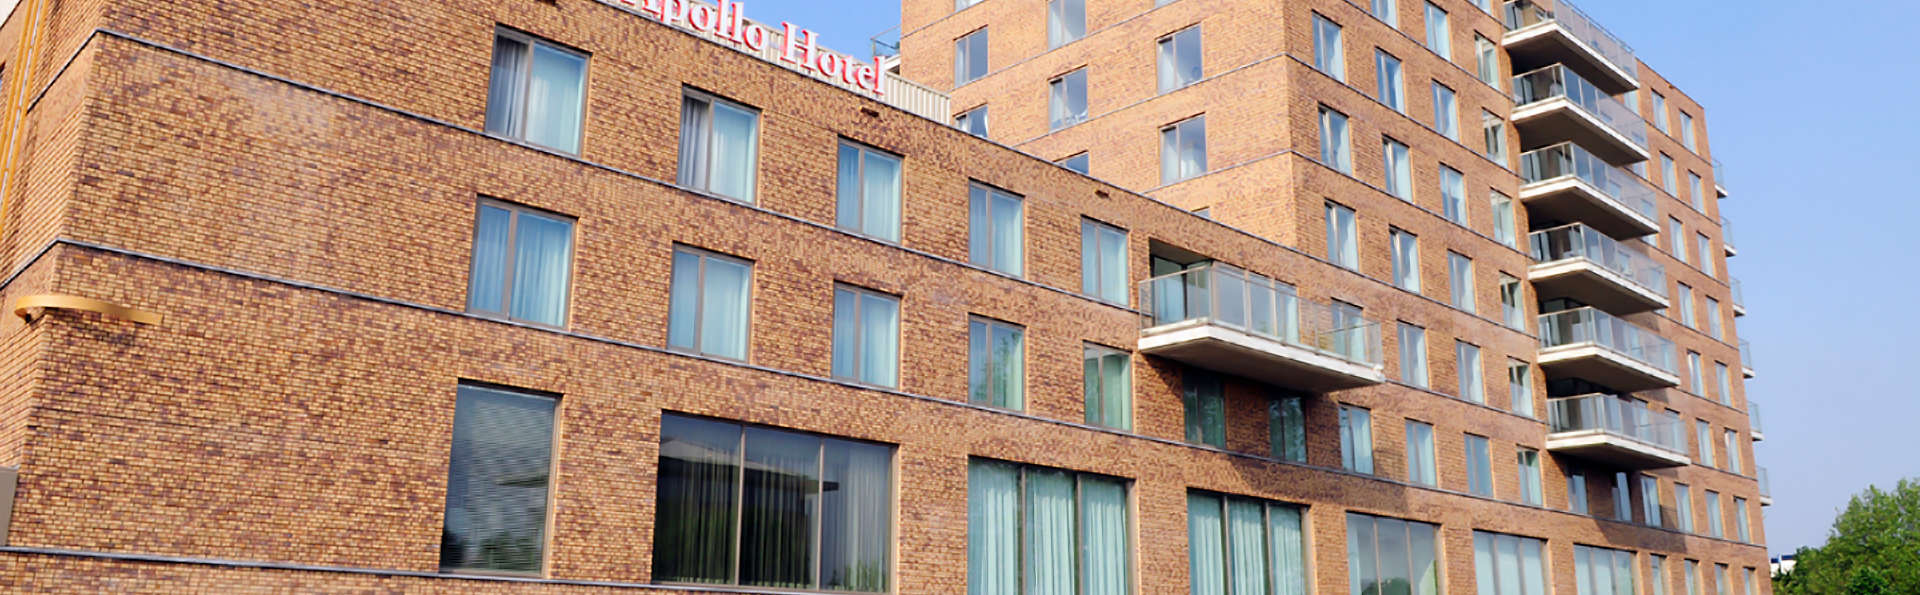 Apollo Hotel Papendrecht - Edit_Front.jpg